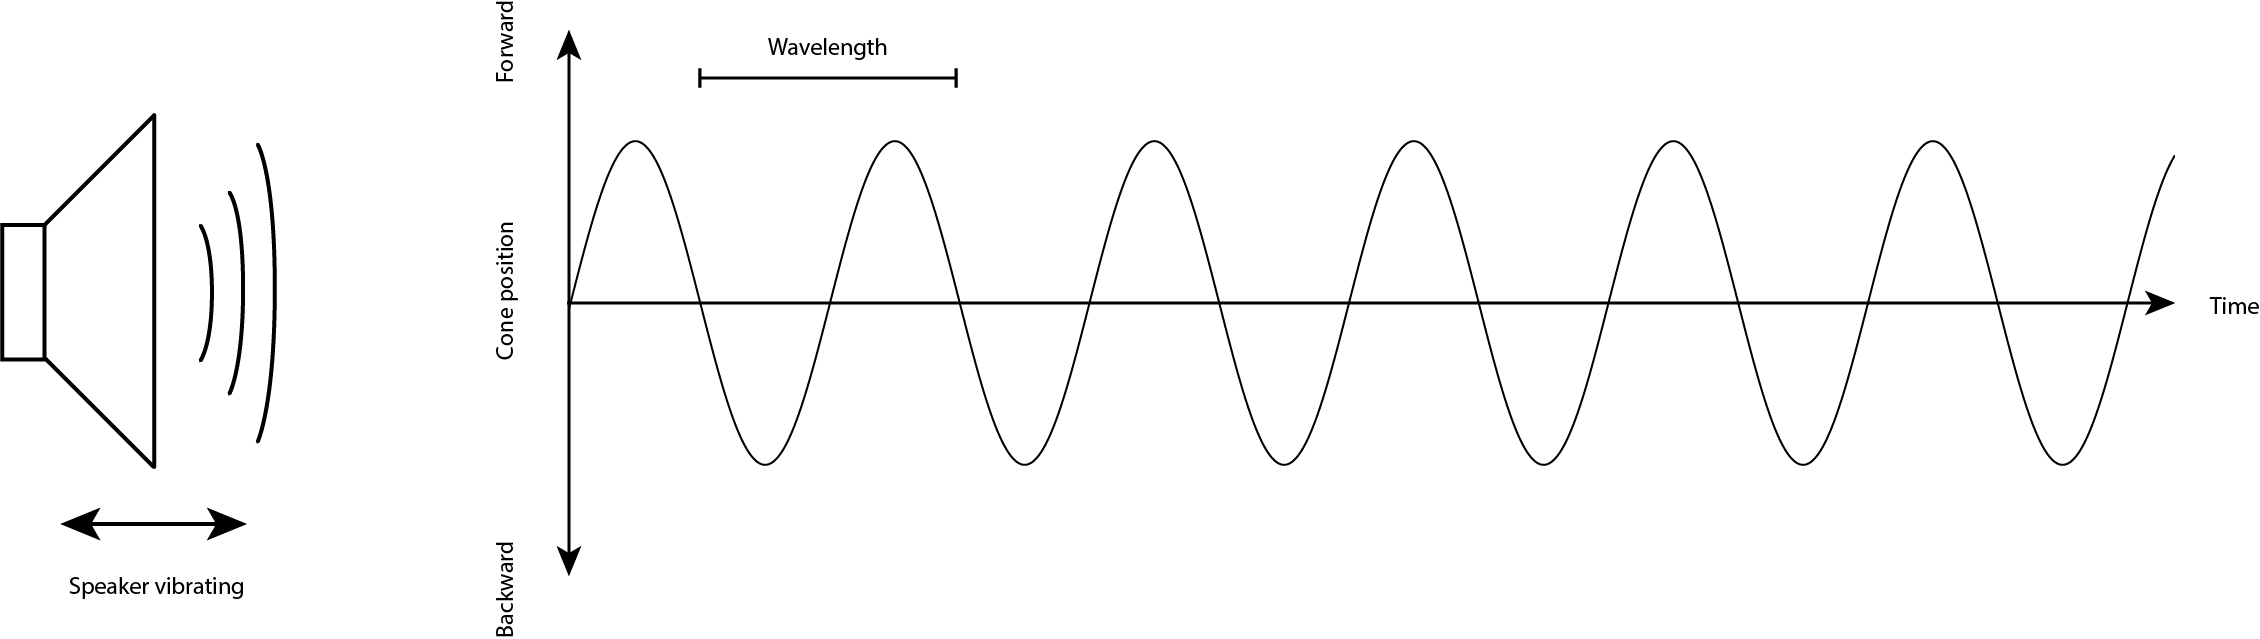 Figure 1. A speaker vibrating in air creates a sine wave movement